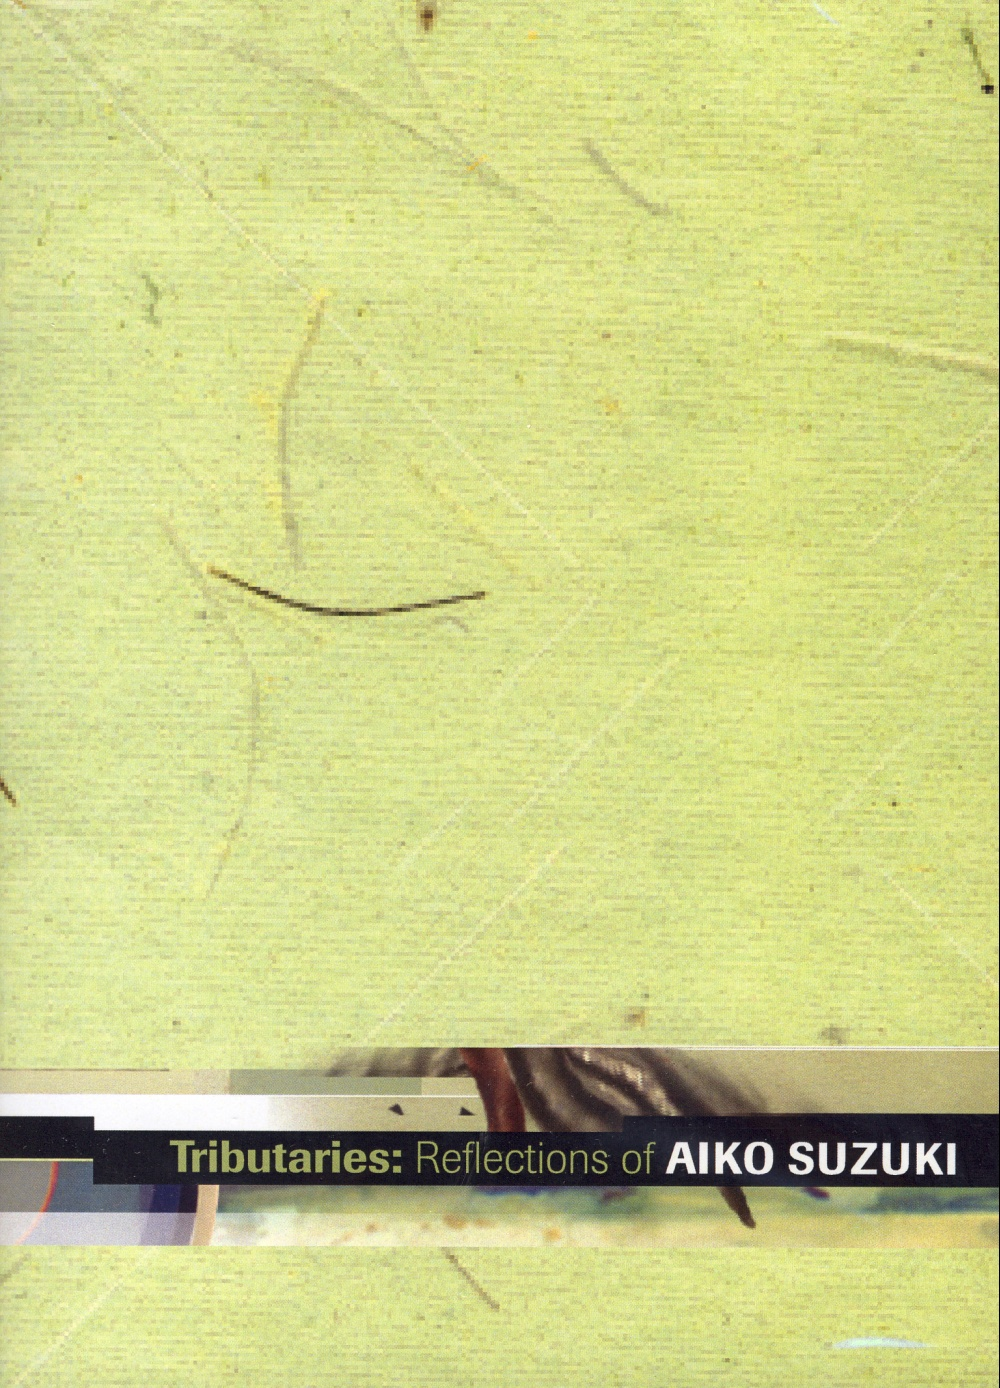 Tributaries: Reflections of Aiko Suzuki